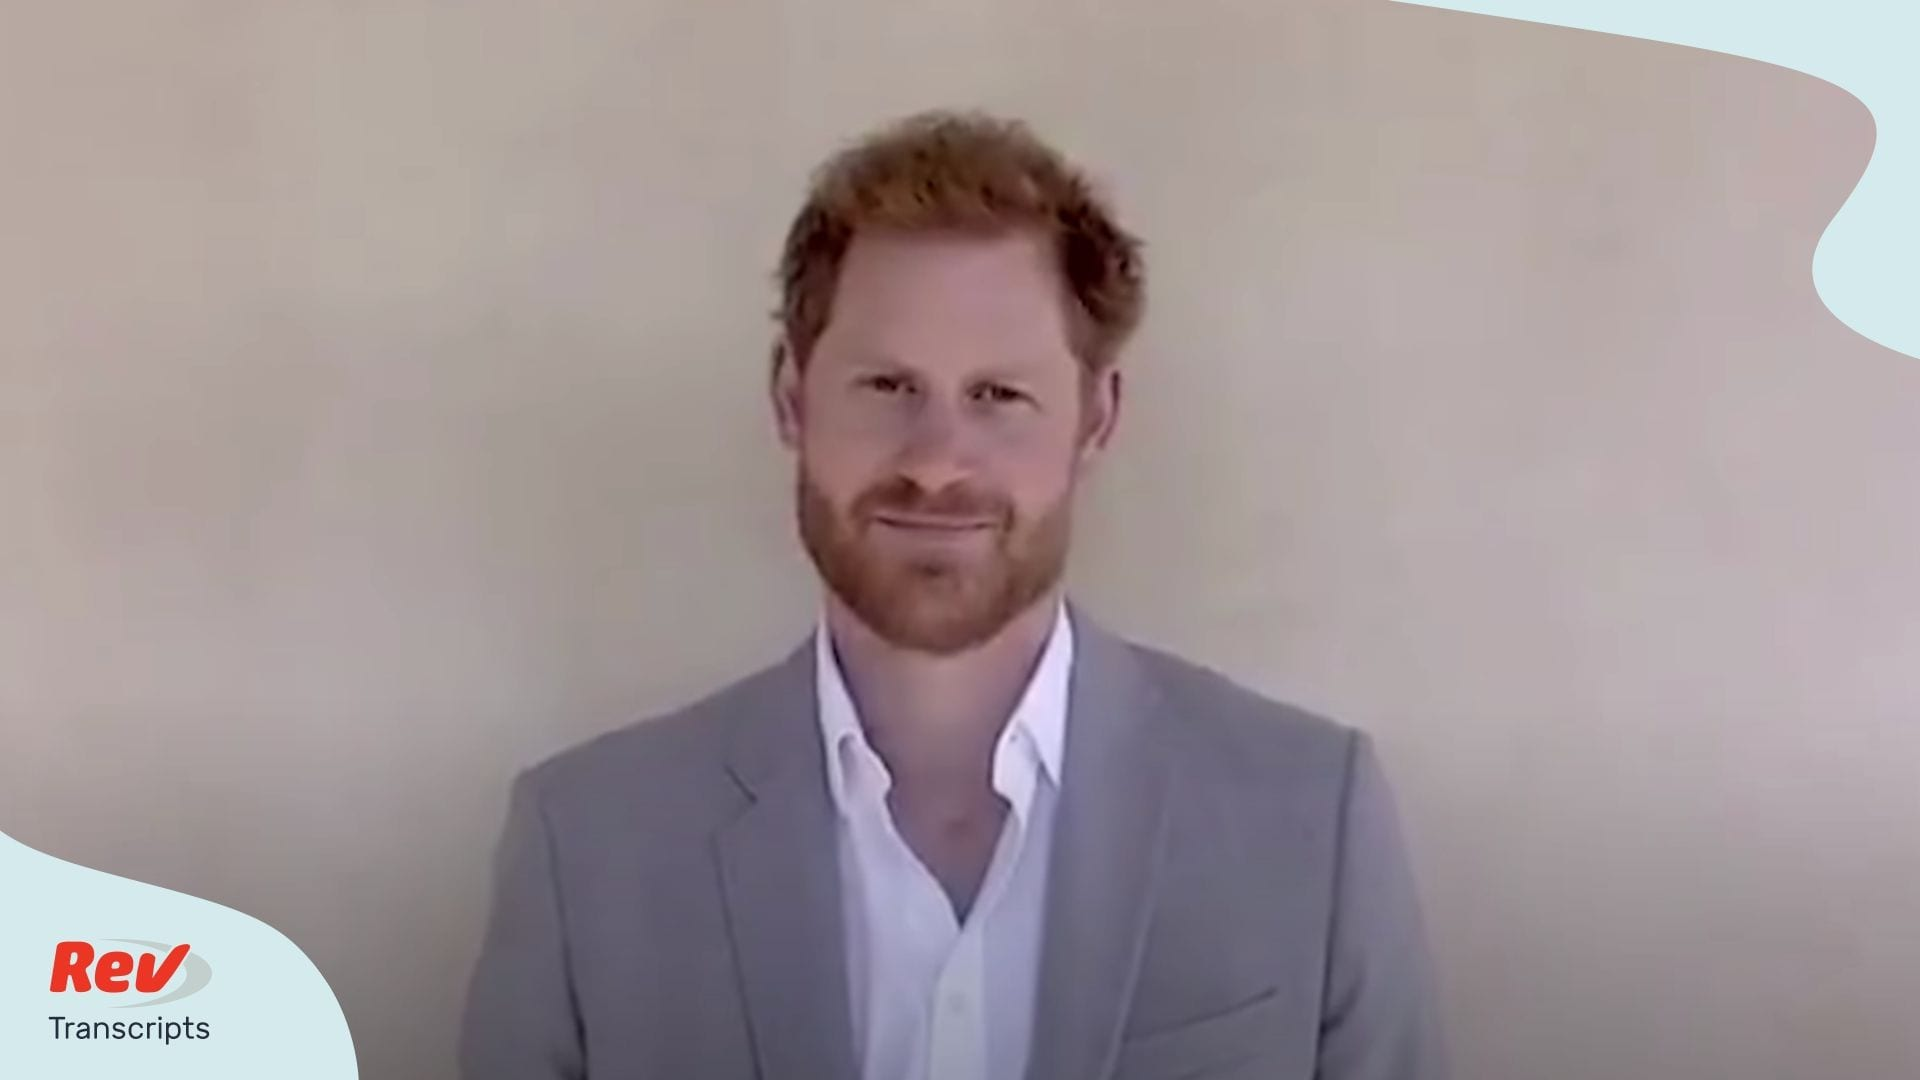 Prince Harry Speech on Institutional Racism